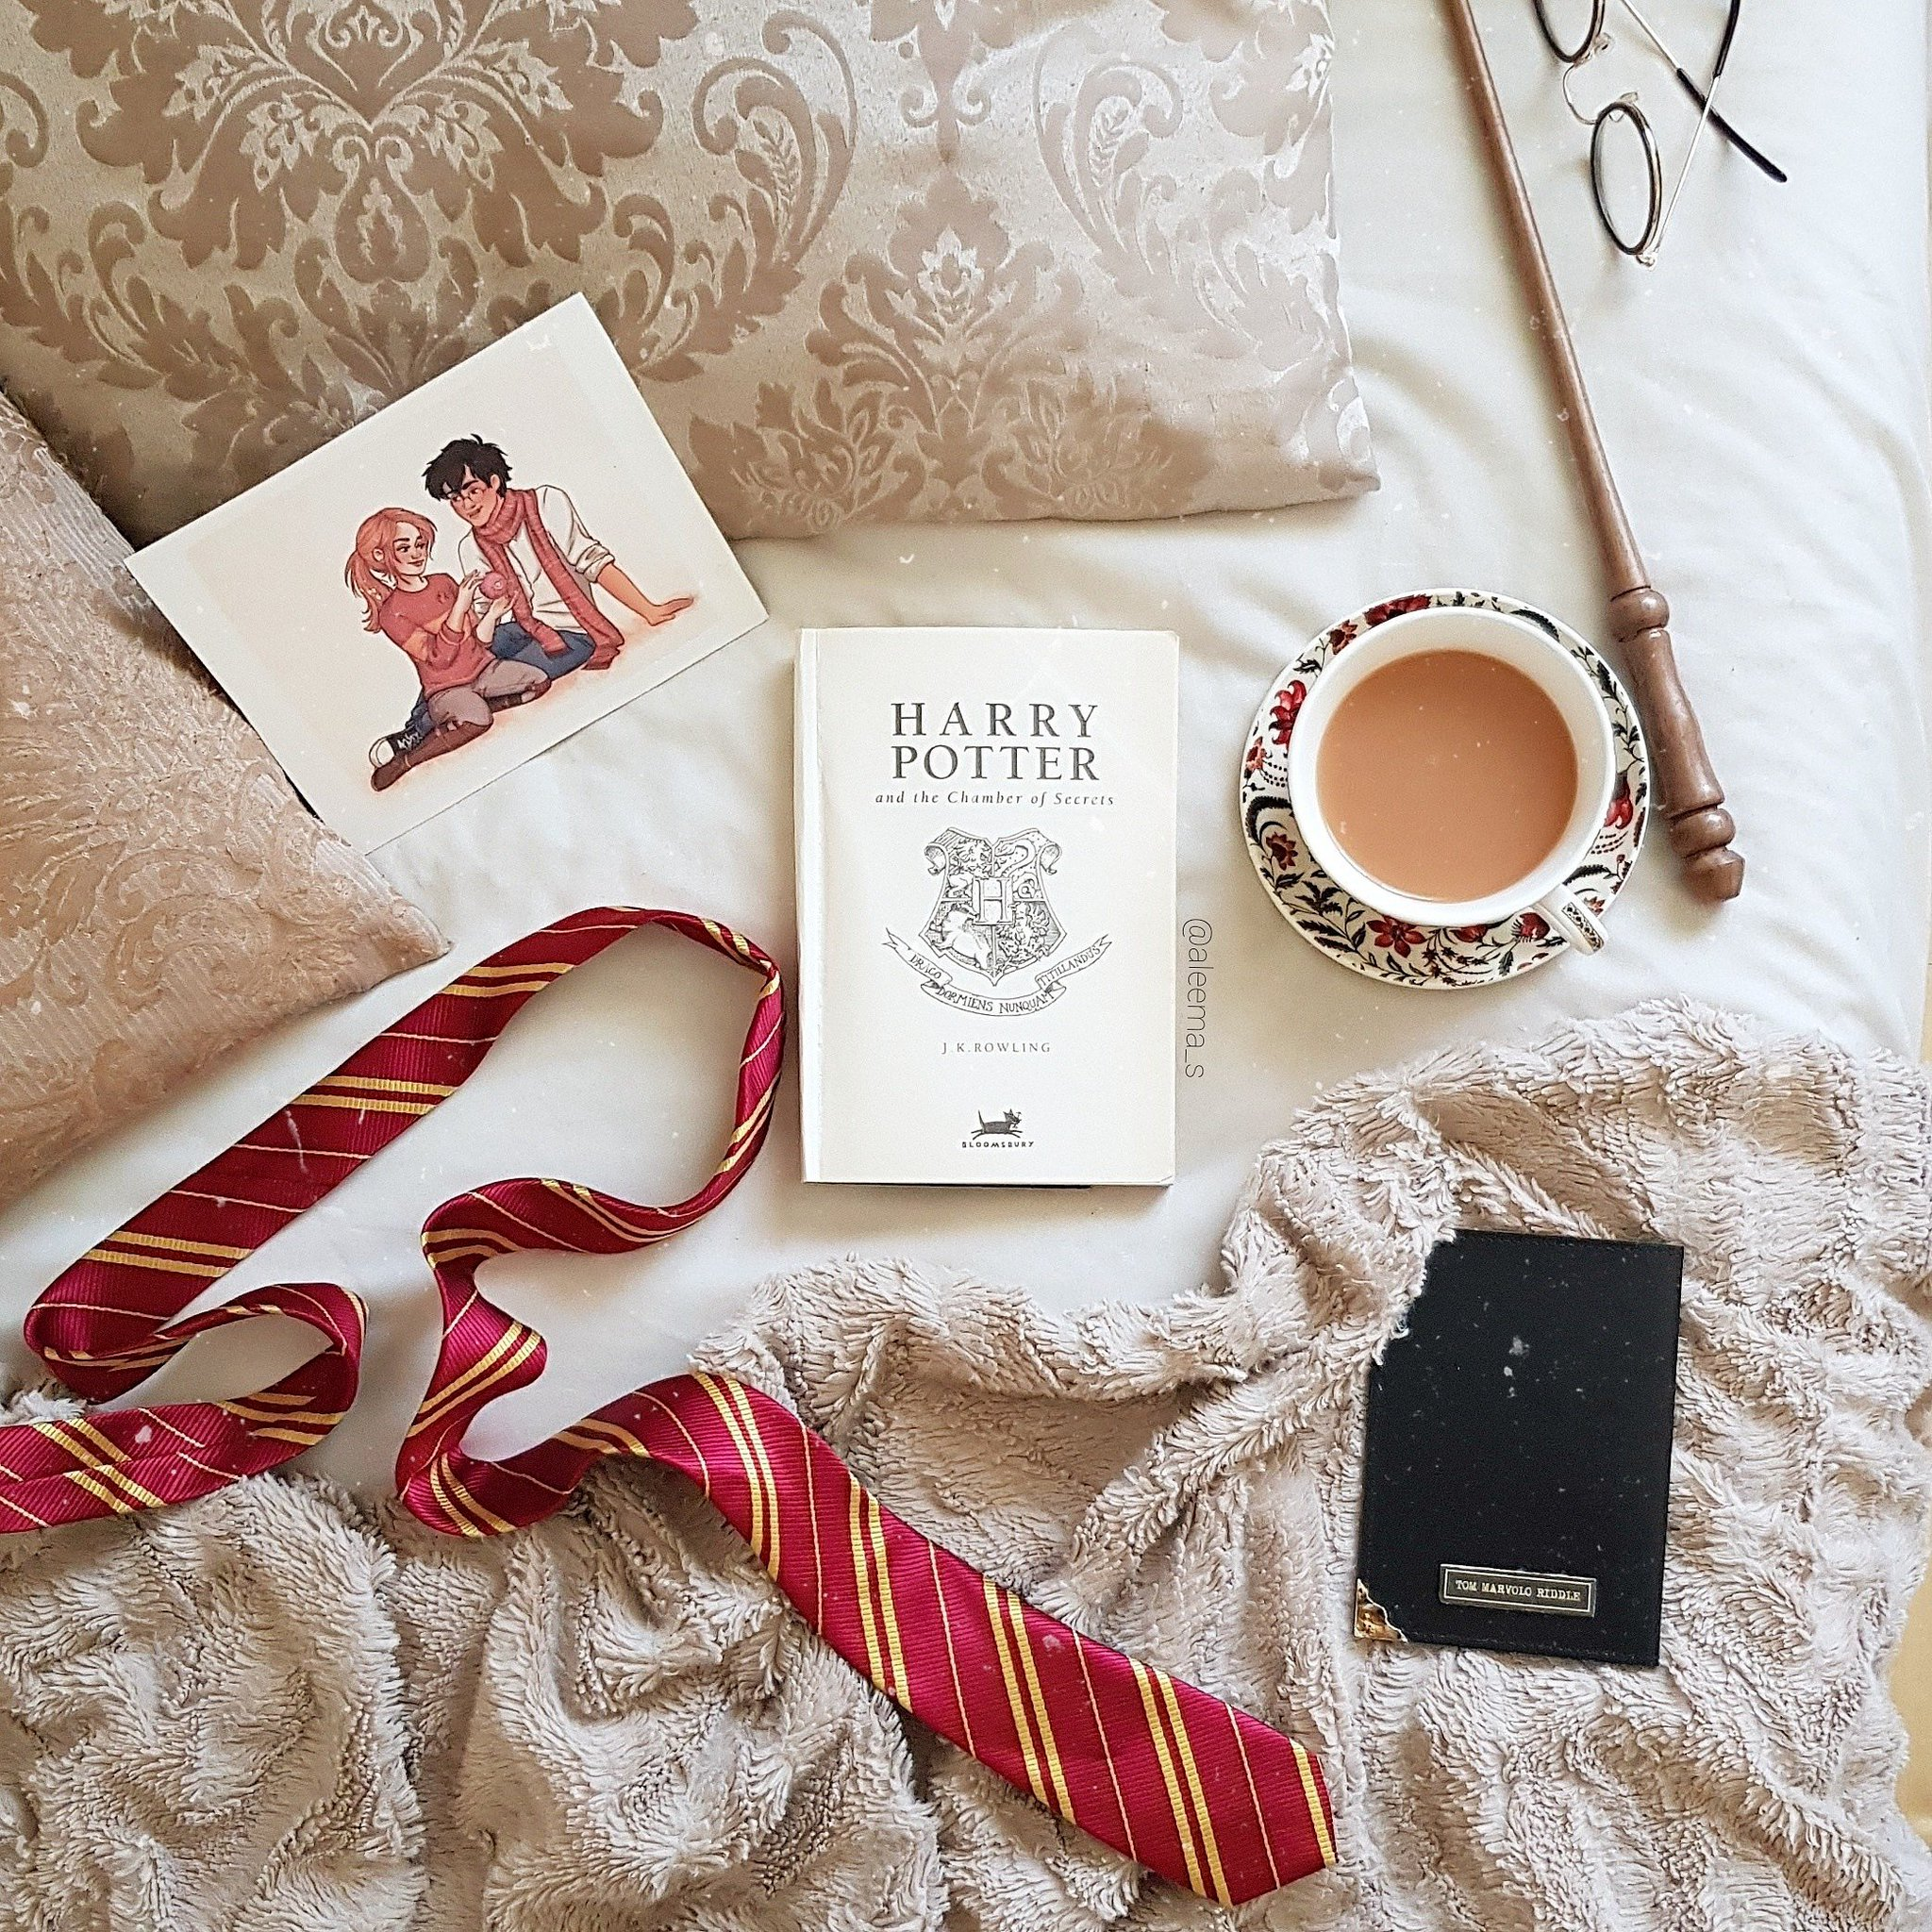 New post up! Happy Birthday Ginny Weasley!